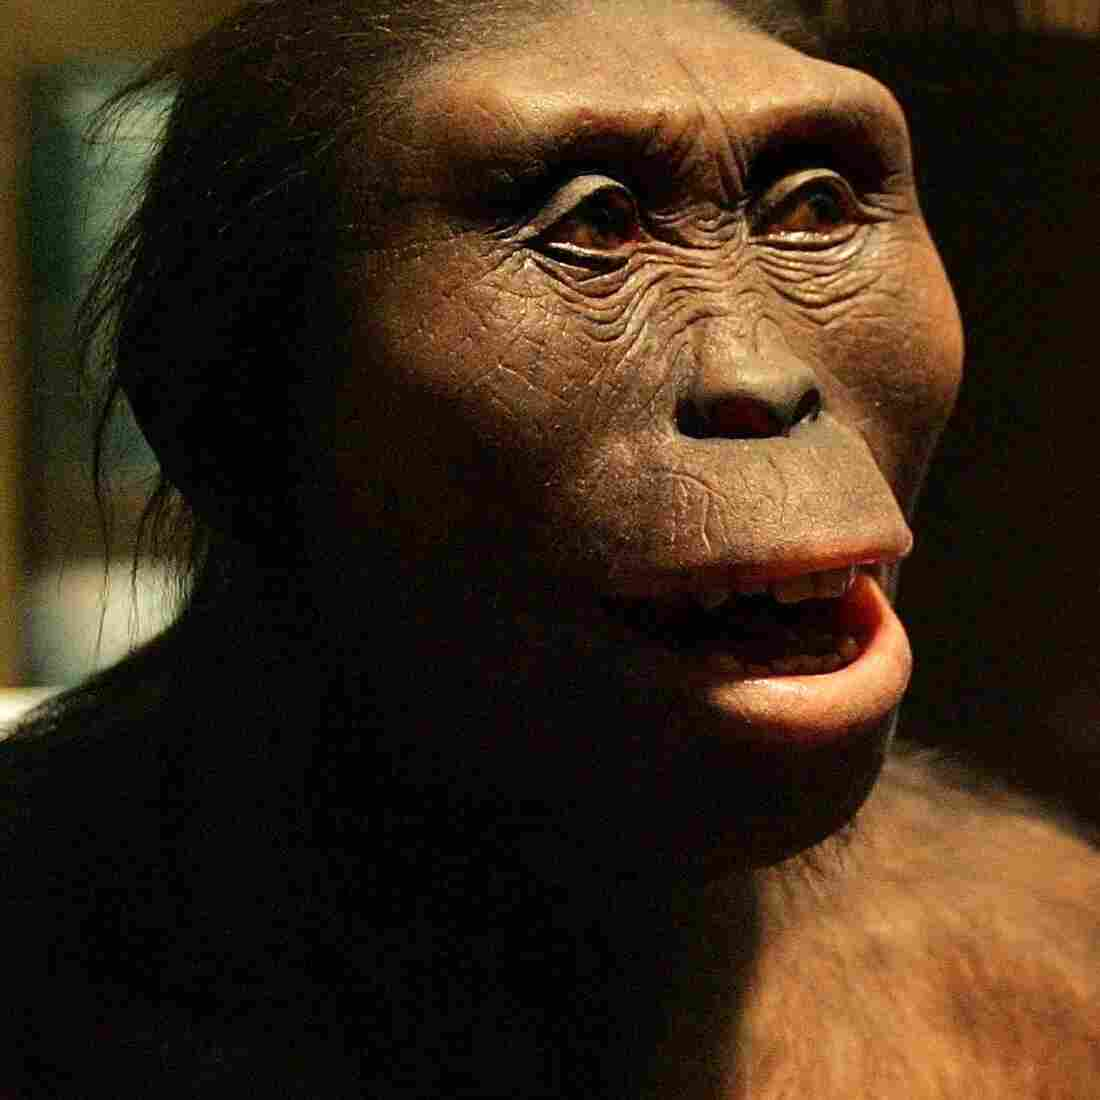 """Human evolution is an unfolding process with chapters yet to be written; no one really knows where we're going. But we can look back to earlier chapters, with ancestors like Australpithecus afarensis, including the individual we call """"Lucy"""" (seen above), for an understanding of how evolution works and what has happened to us over time."""